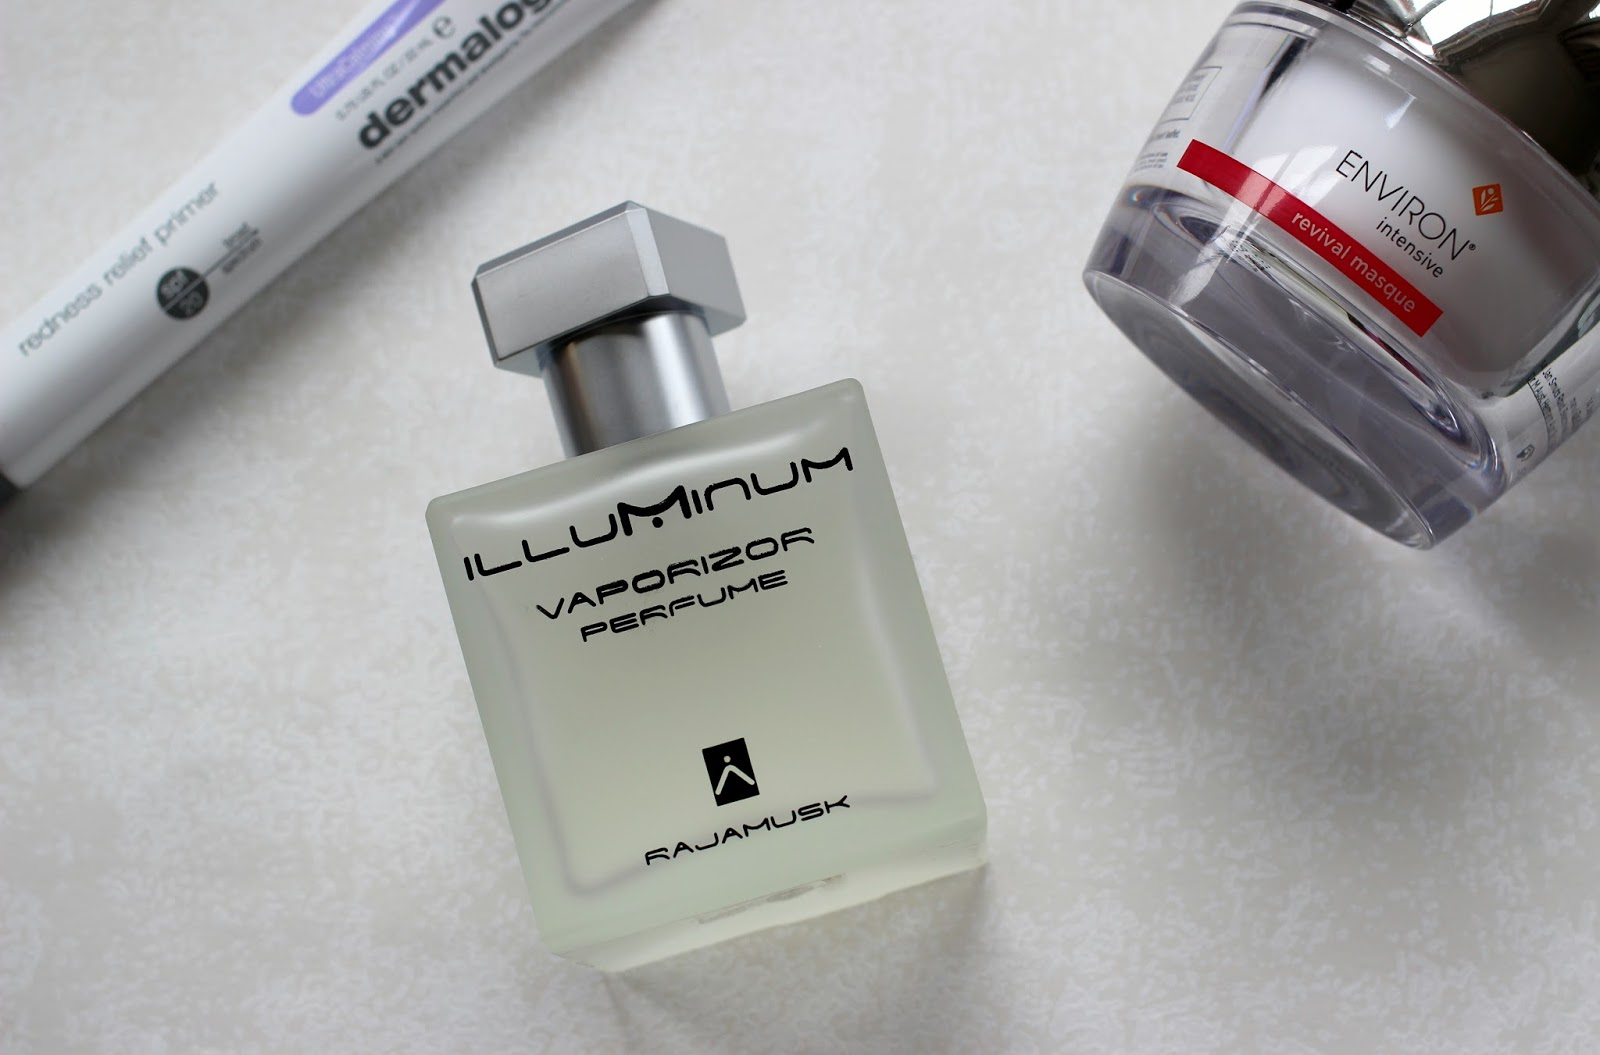 Illuminum Rajamusk review